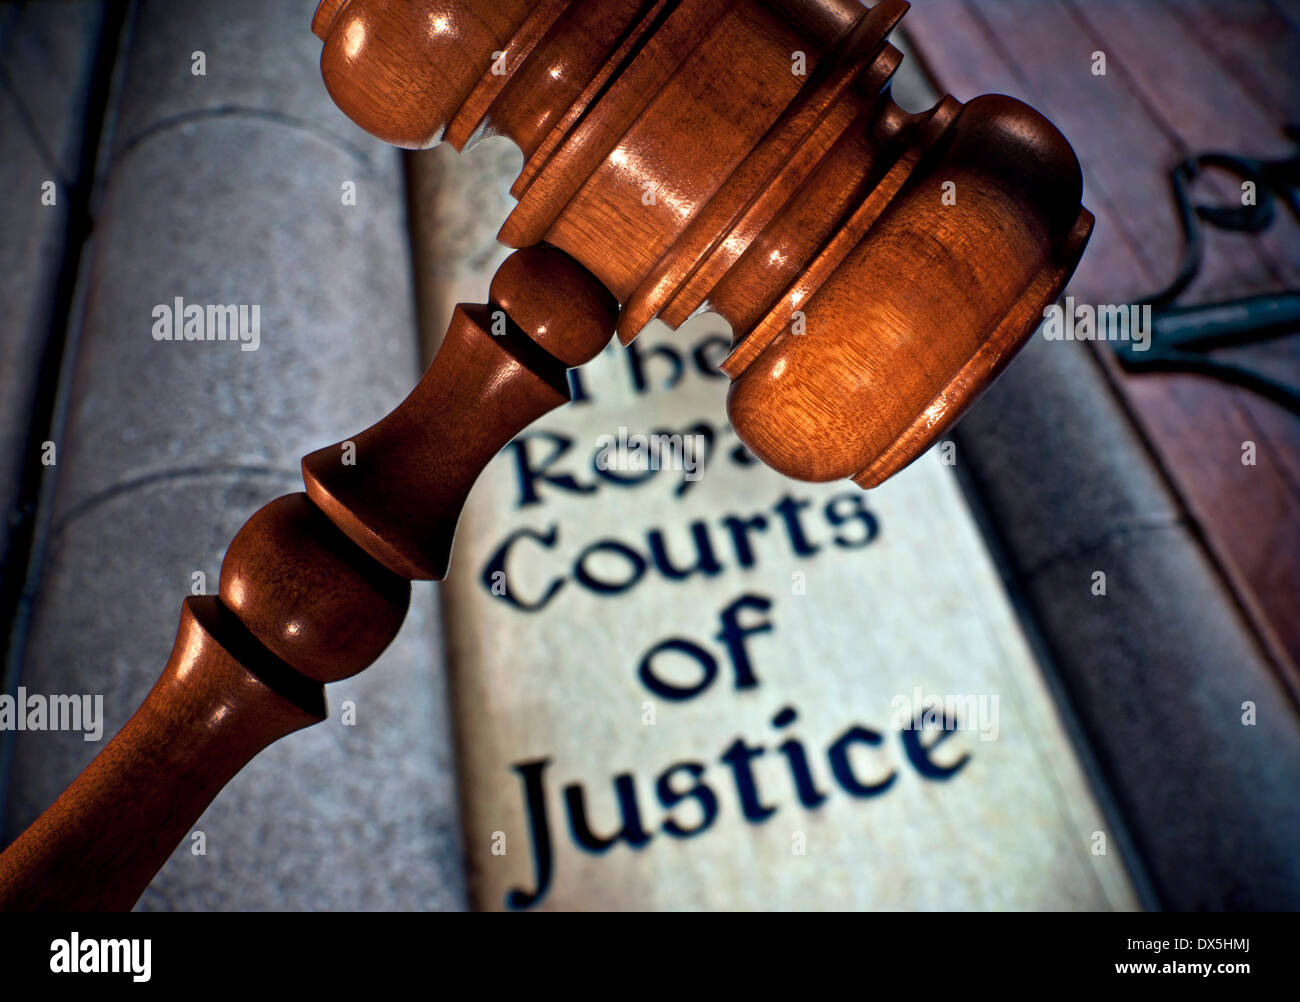 Law / Justice concept Close view on Judges gavel with entrance sign to Royal Courts of Justice Holborn London UK - Stock Image